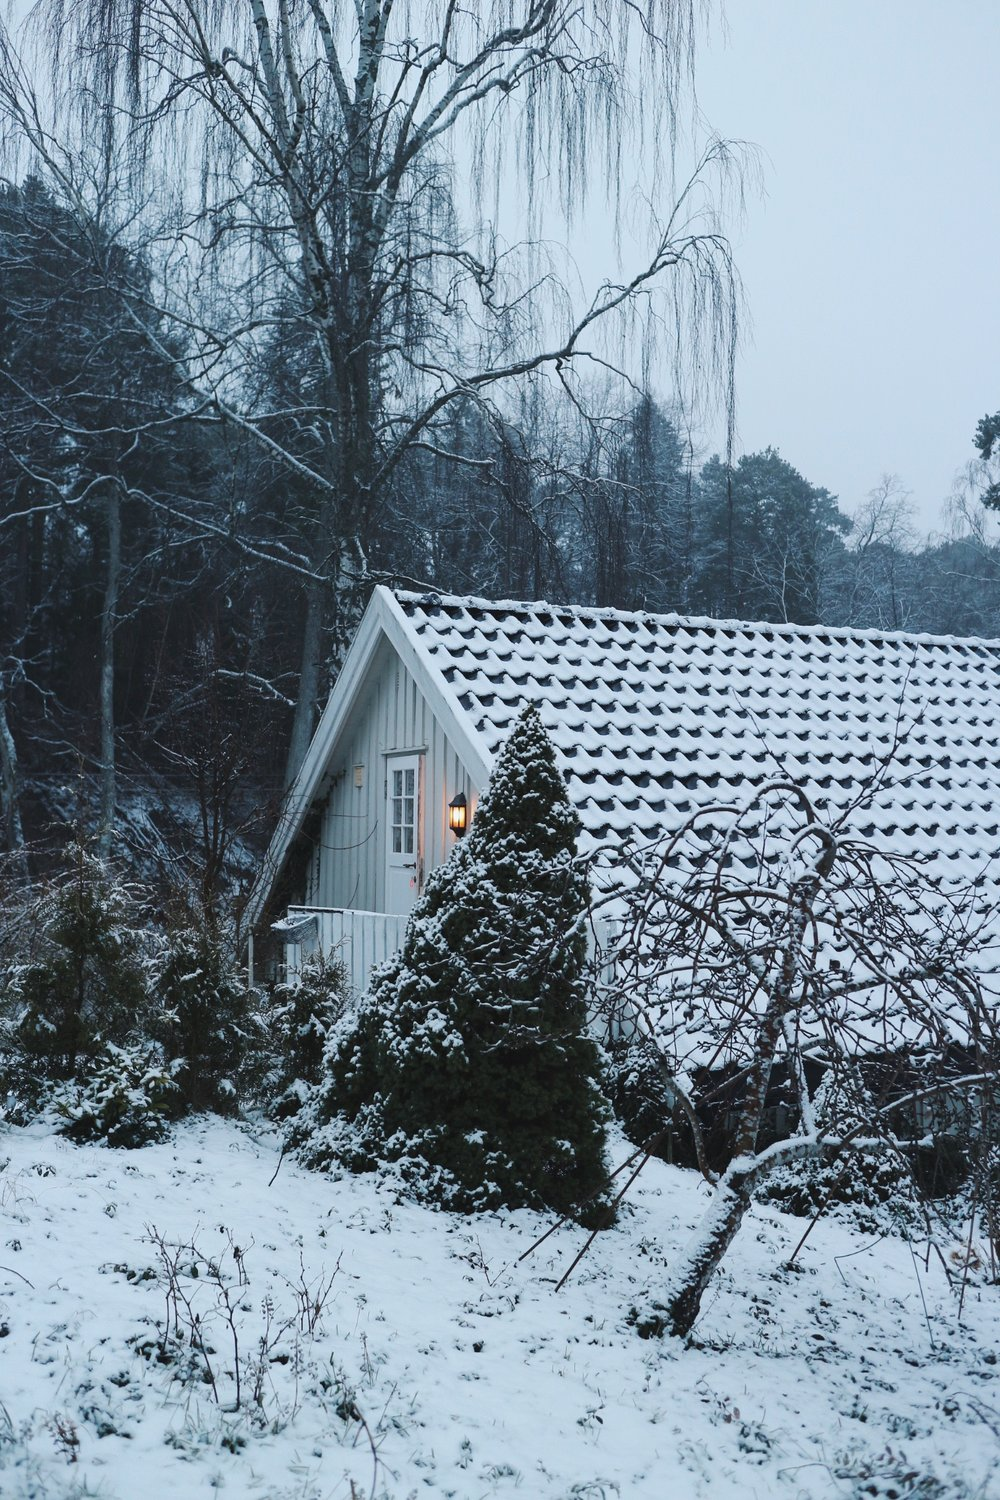 Winter in Scandinavia